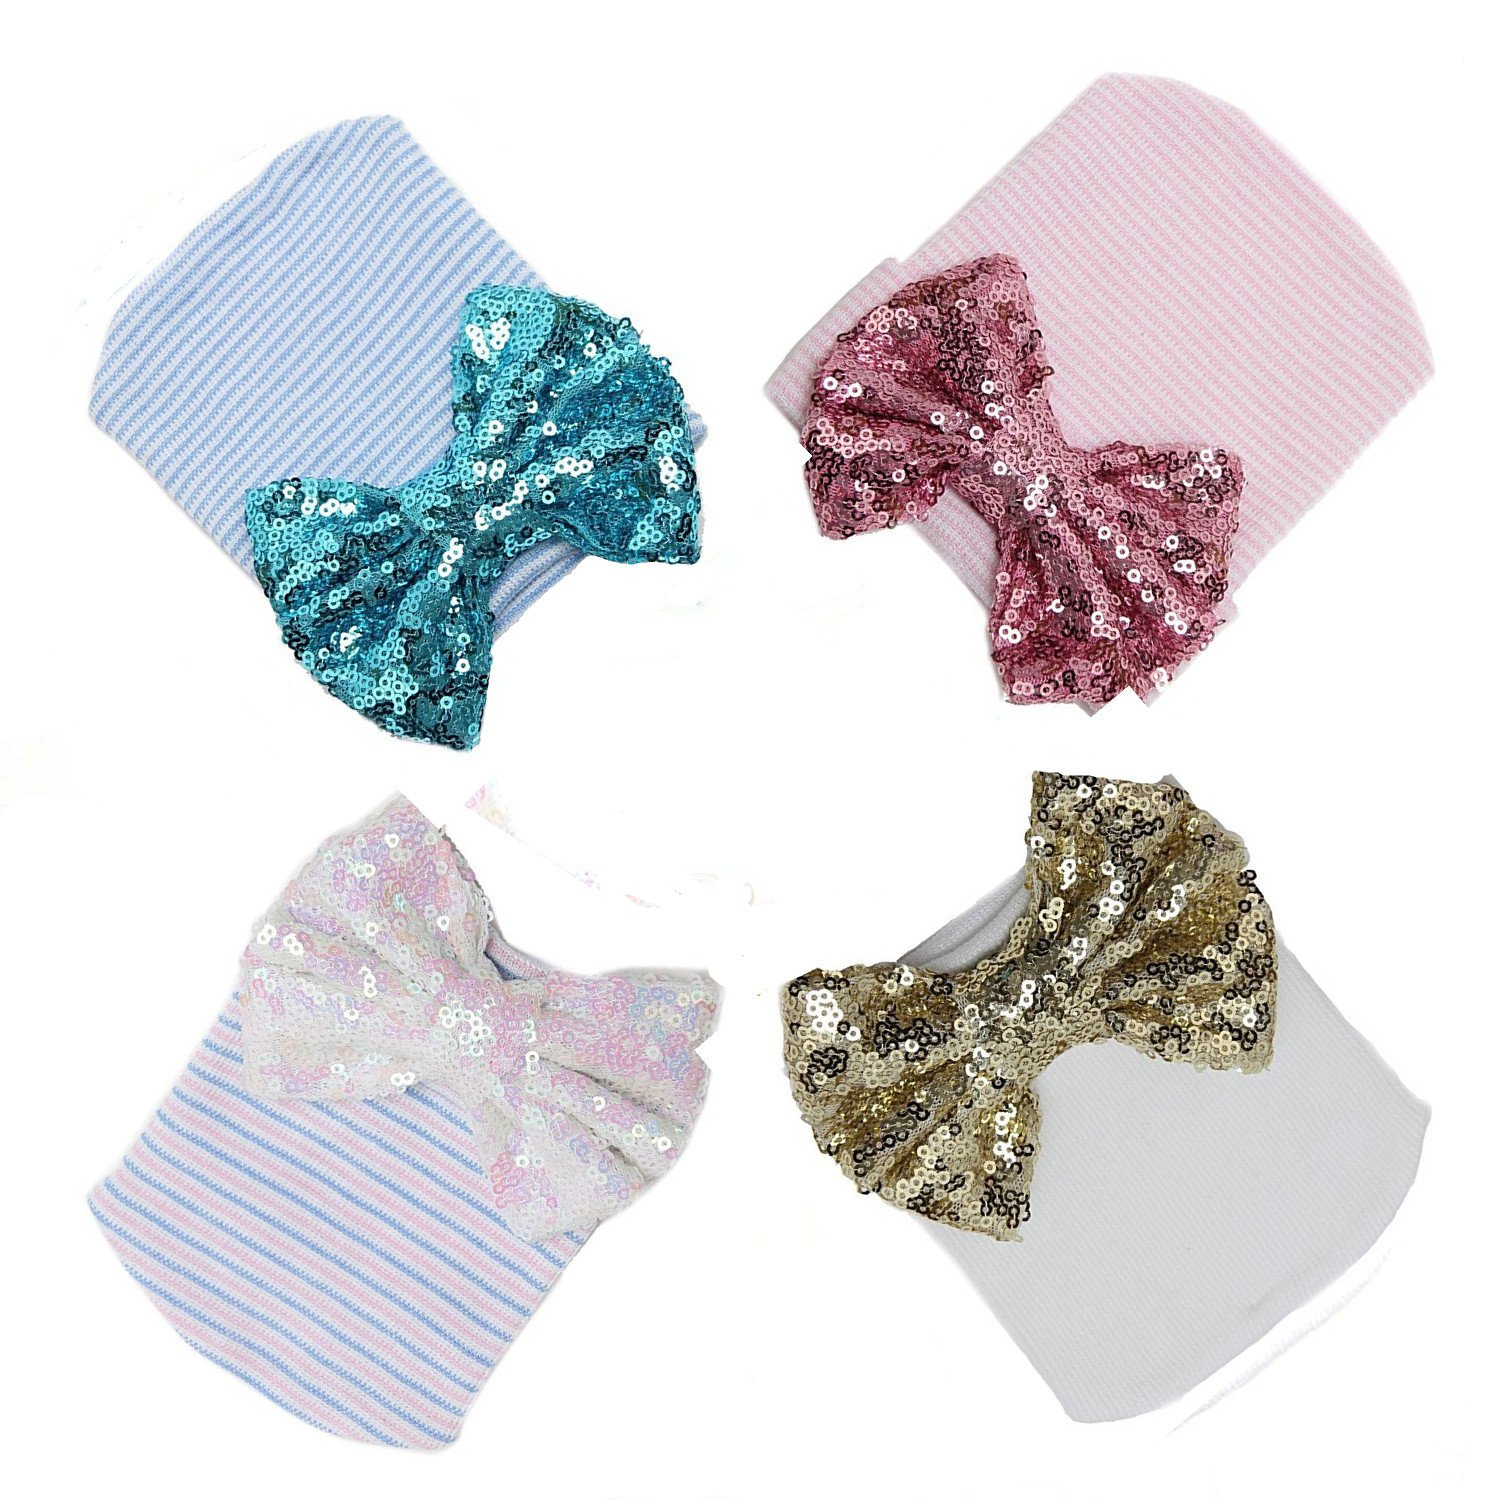 4 colors Ademoo Baby Girls Newborn Hospital Hat with Sequin Bow